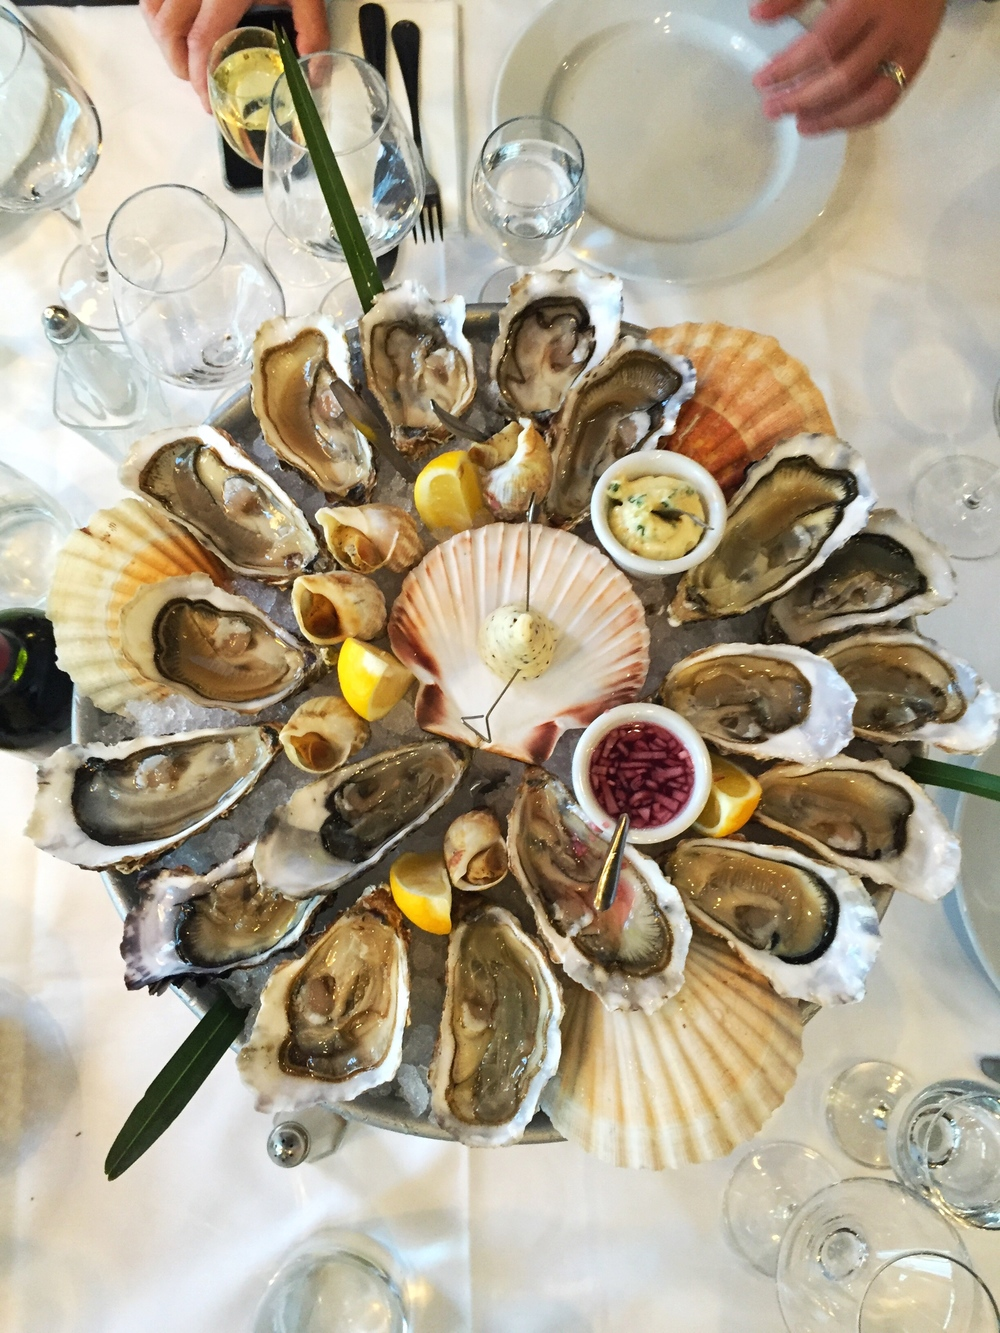 Oyster vibes at restaurant Fernand by the river